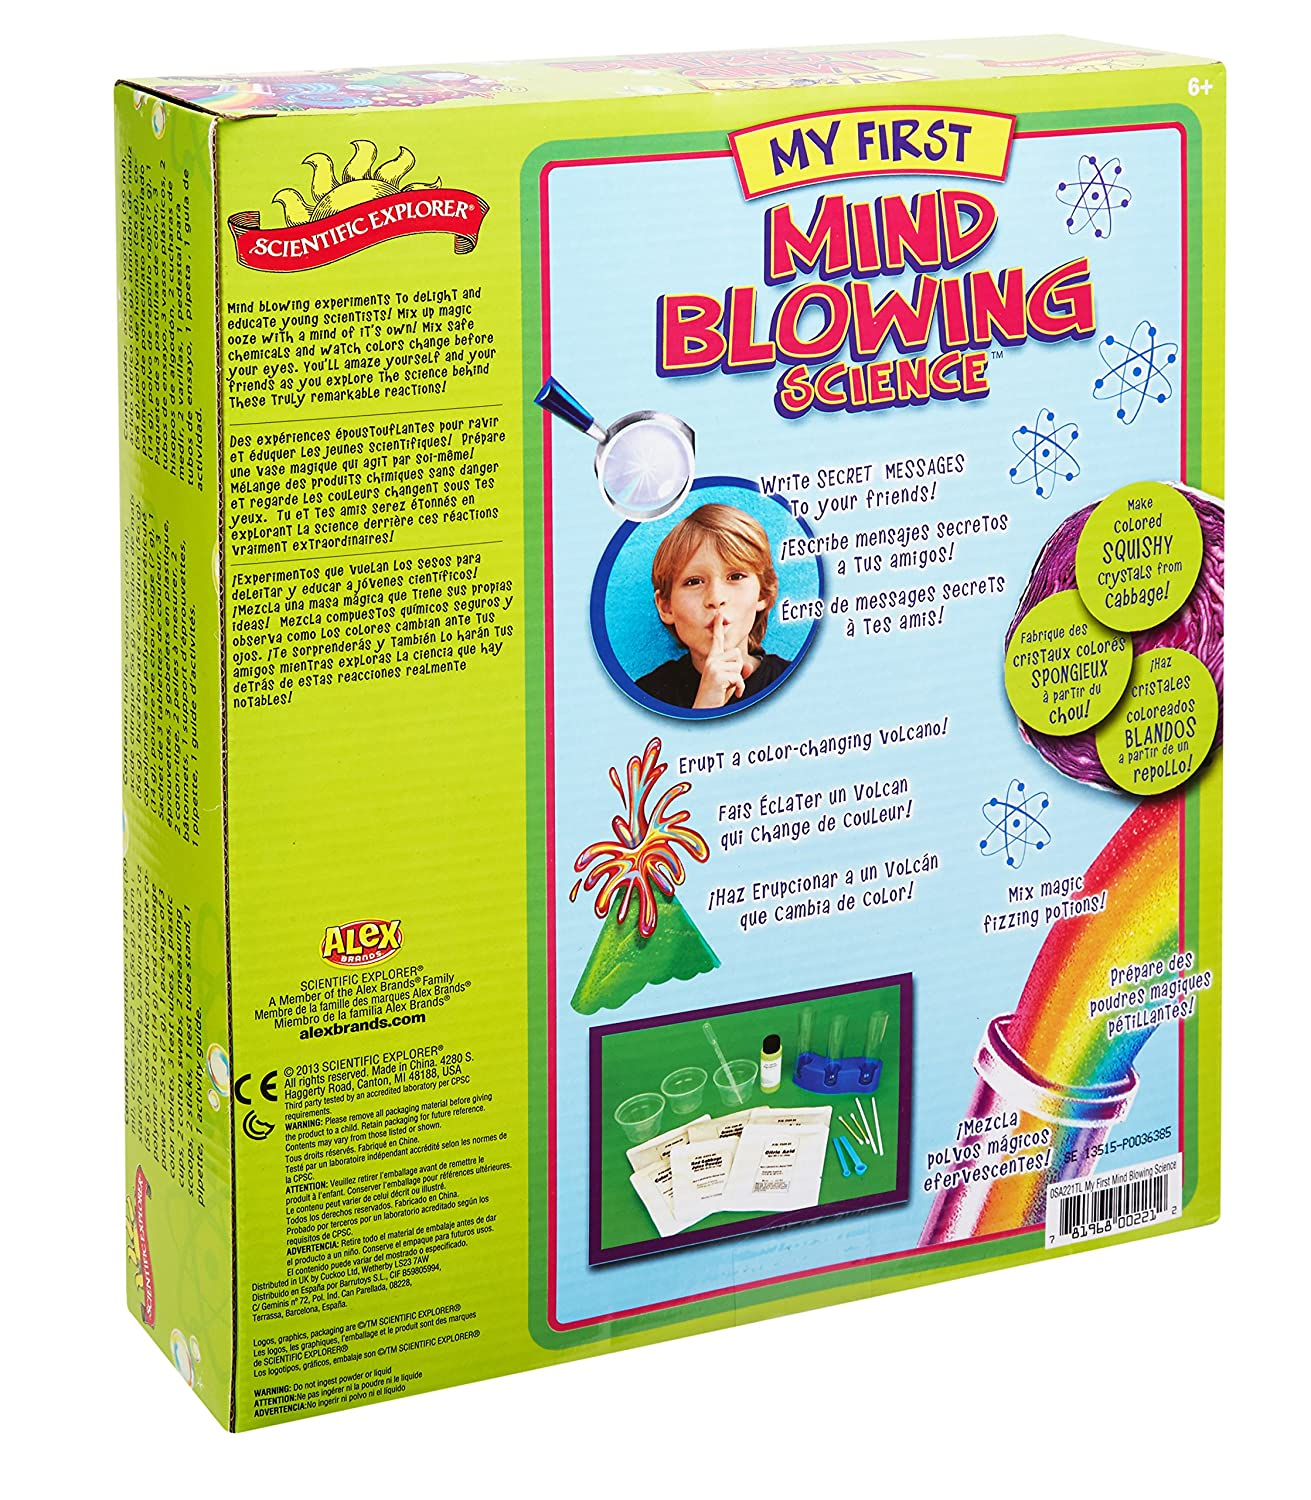 Amazon Scientific Explorer My First Mind Blowing Science Kit